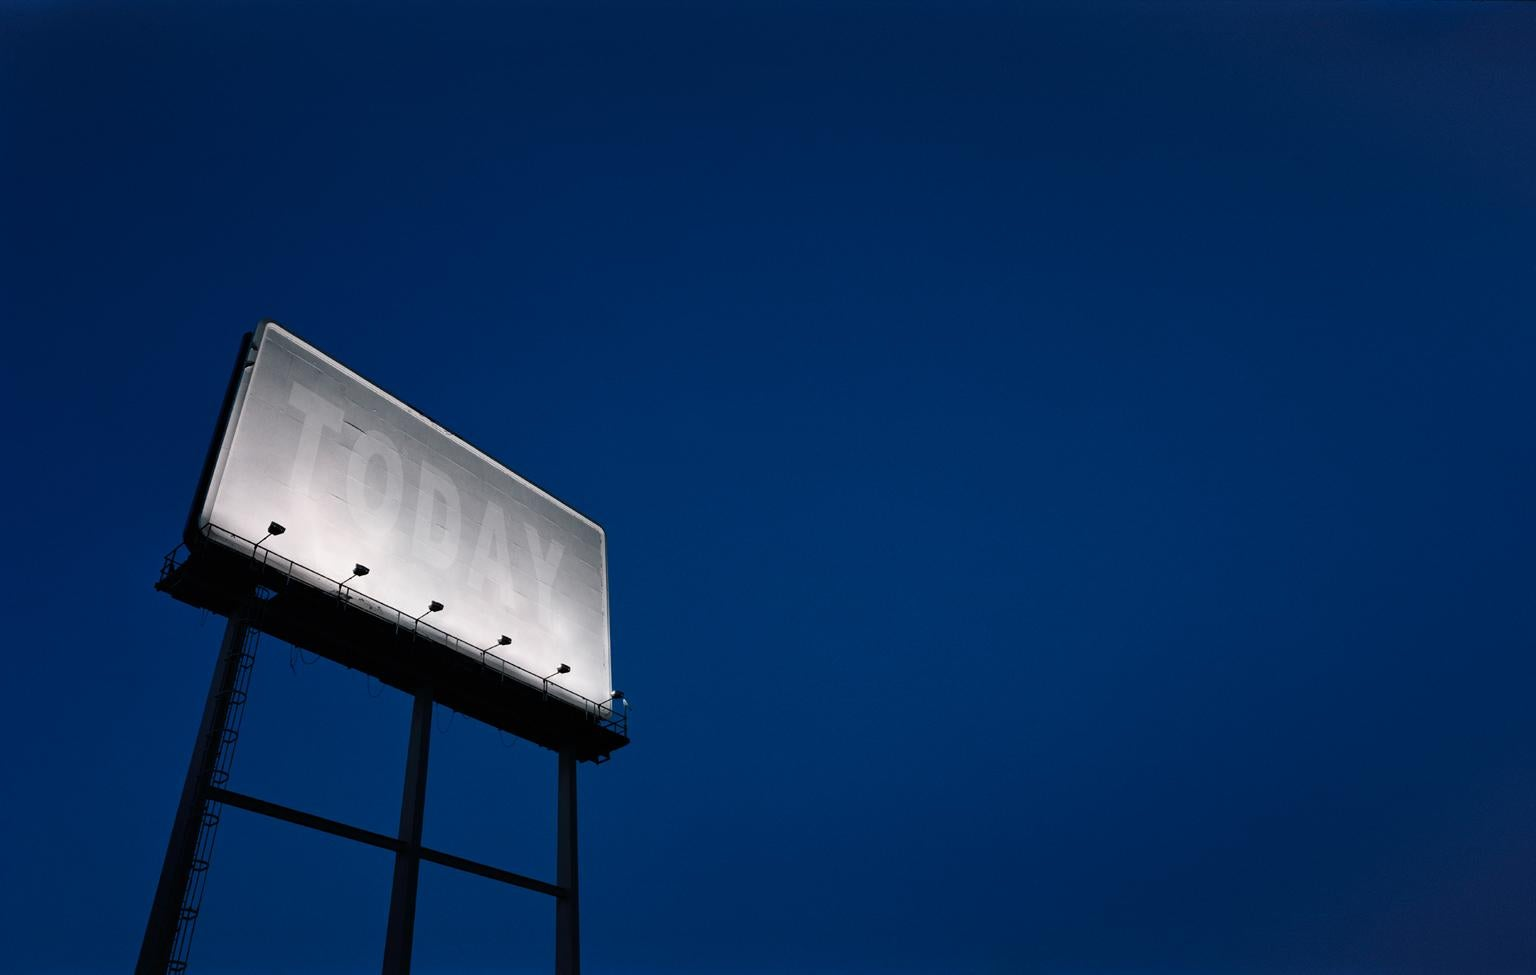 TODAY - large format photograph of conceptual motivational billboard at night